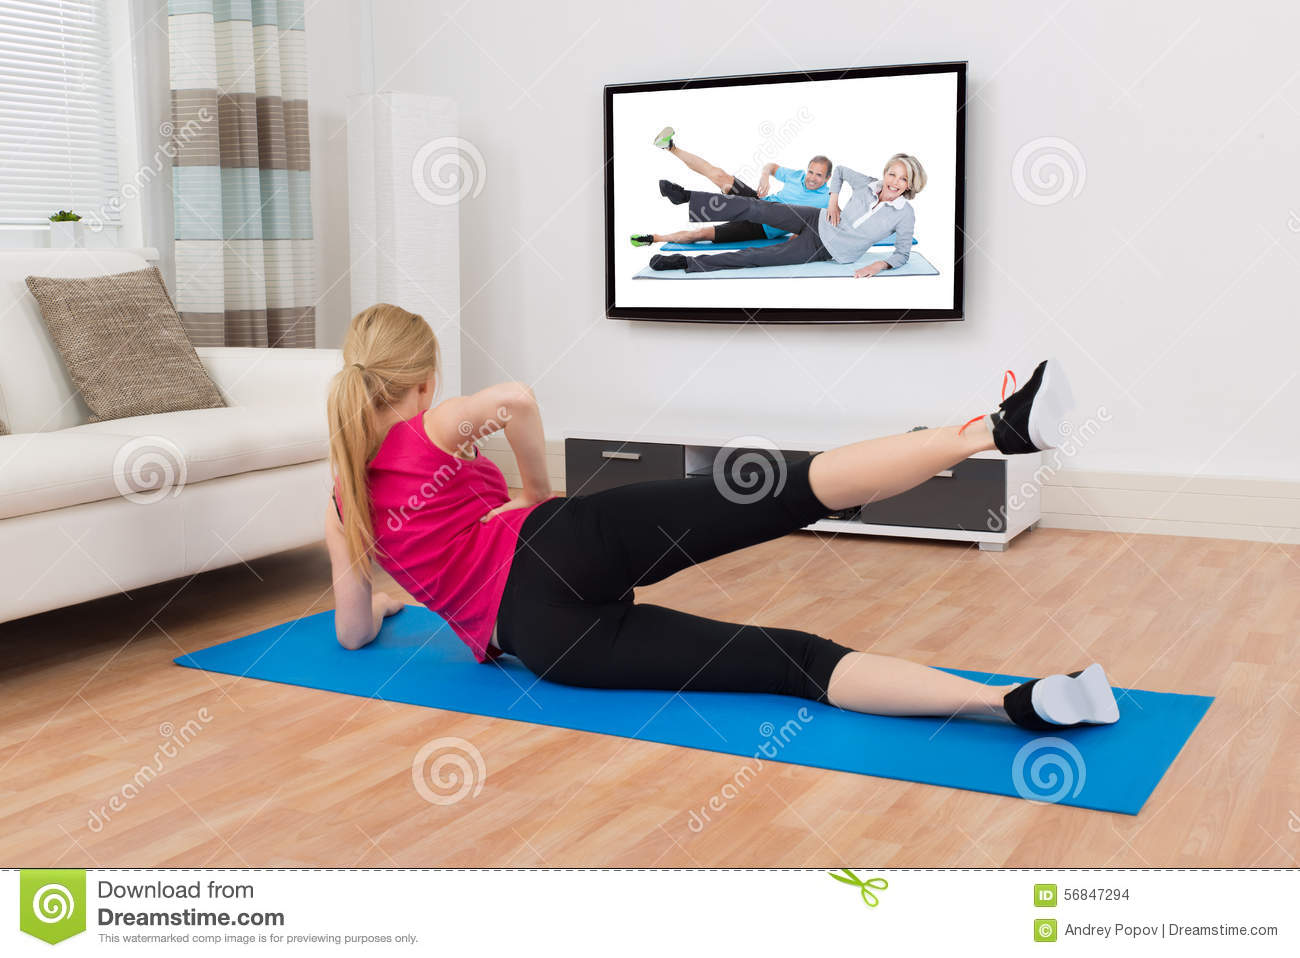 Woman Exercising On Exercise Mat In Front Of Television